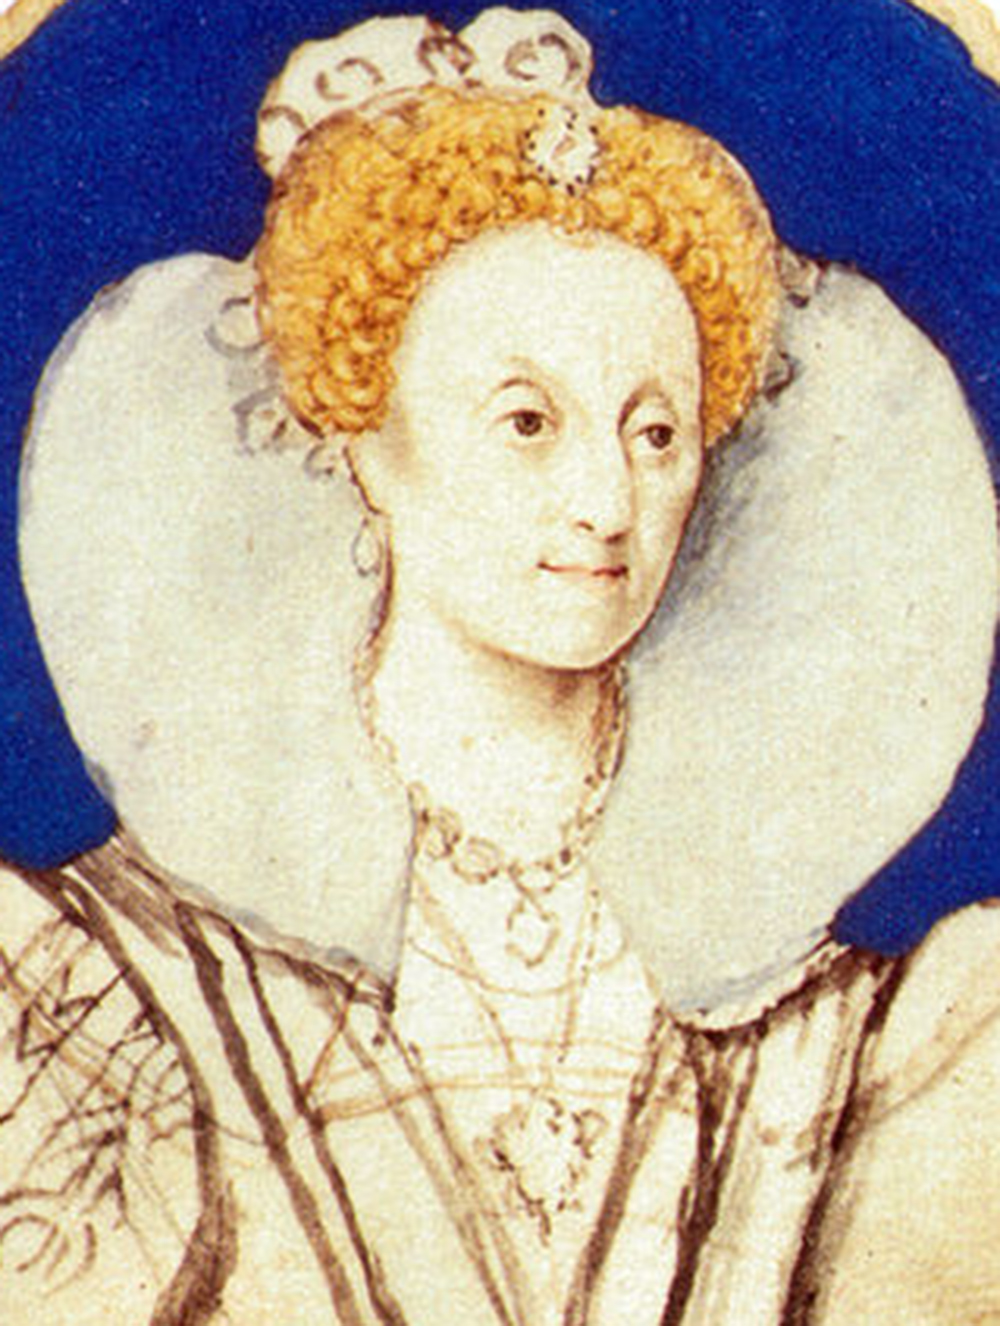 Unfinished portrait of Queen Elizabeth I, age sixty, by Isaac Oliver, 1592.